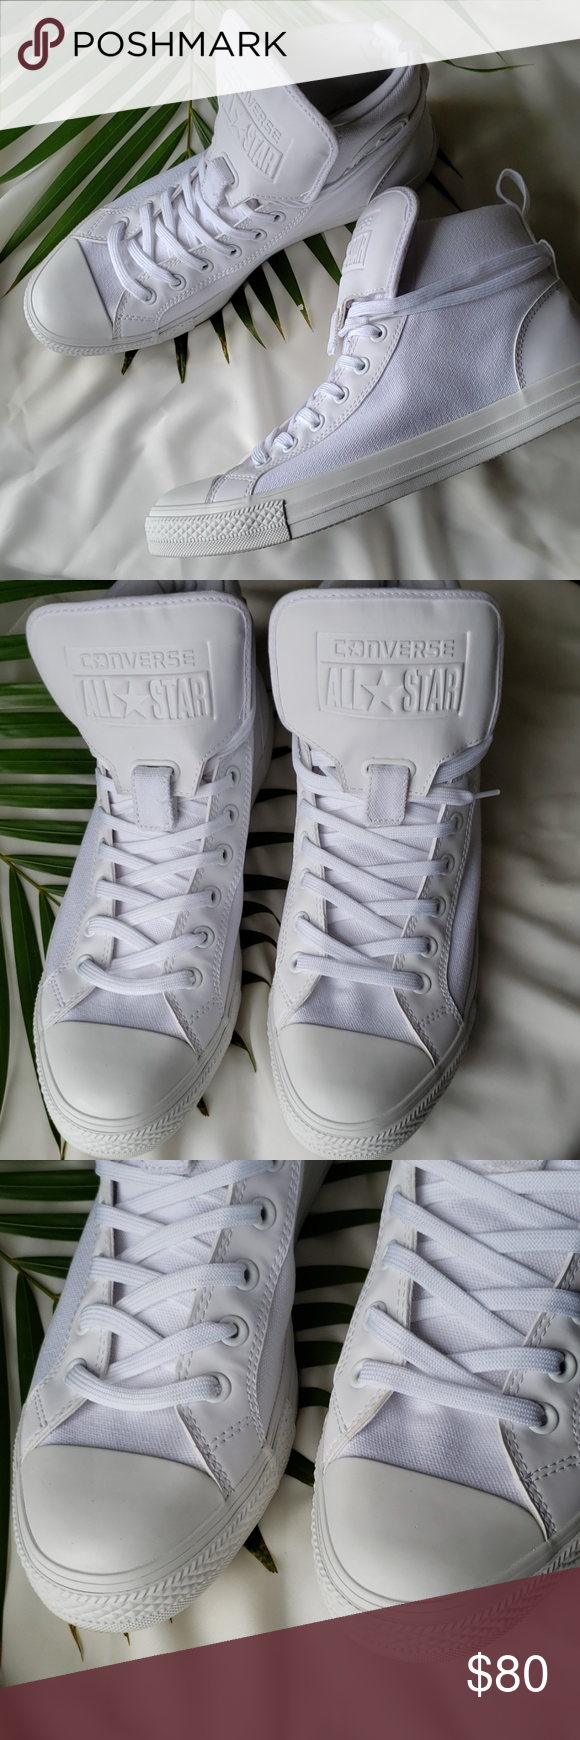 Unisex Converse Chuck taylor All star - white New has a small mark on the side of the left shoe not noticeable thought - No Box  Converse unisex chuck taylor all star  Men size 11  Women size 13 Converse Shoes Sneakers #whiteallstars